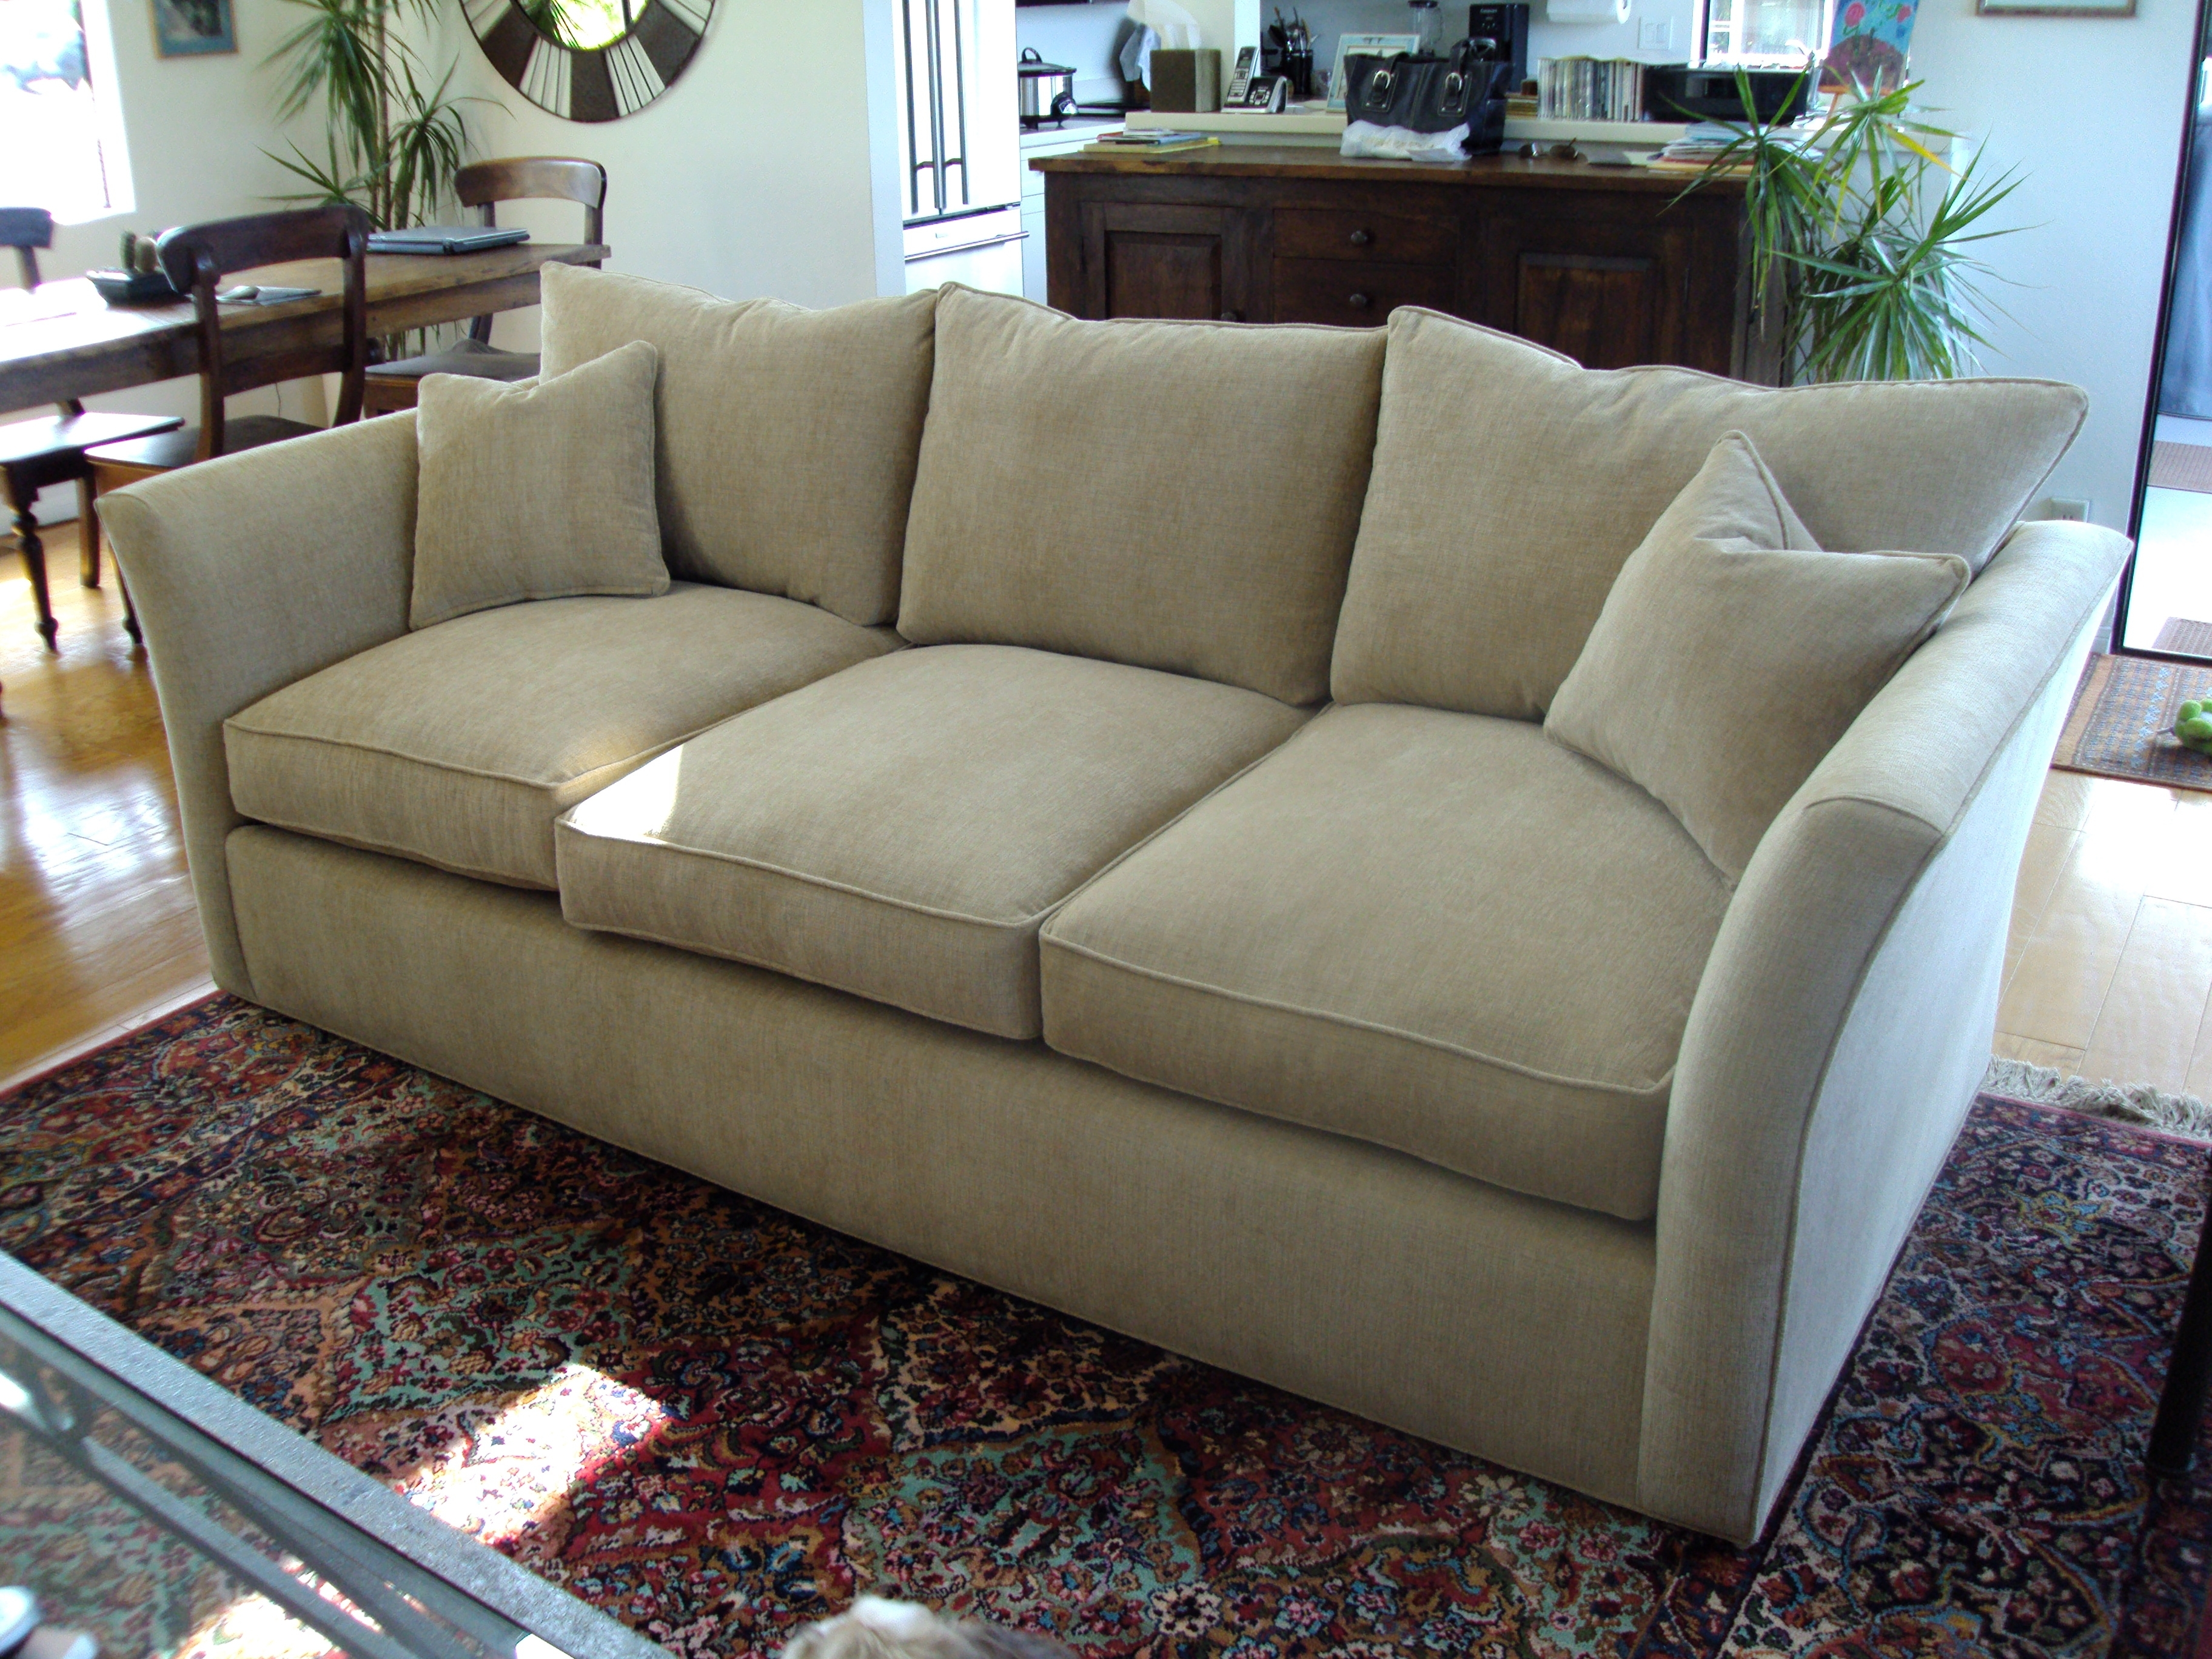 Attractive Reupholstering A Sectional Sofa 67 For Sectional Sofas With Sectional Sofas In North Carolina (Image 2 of 10)